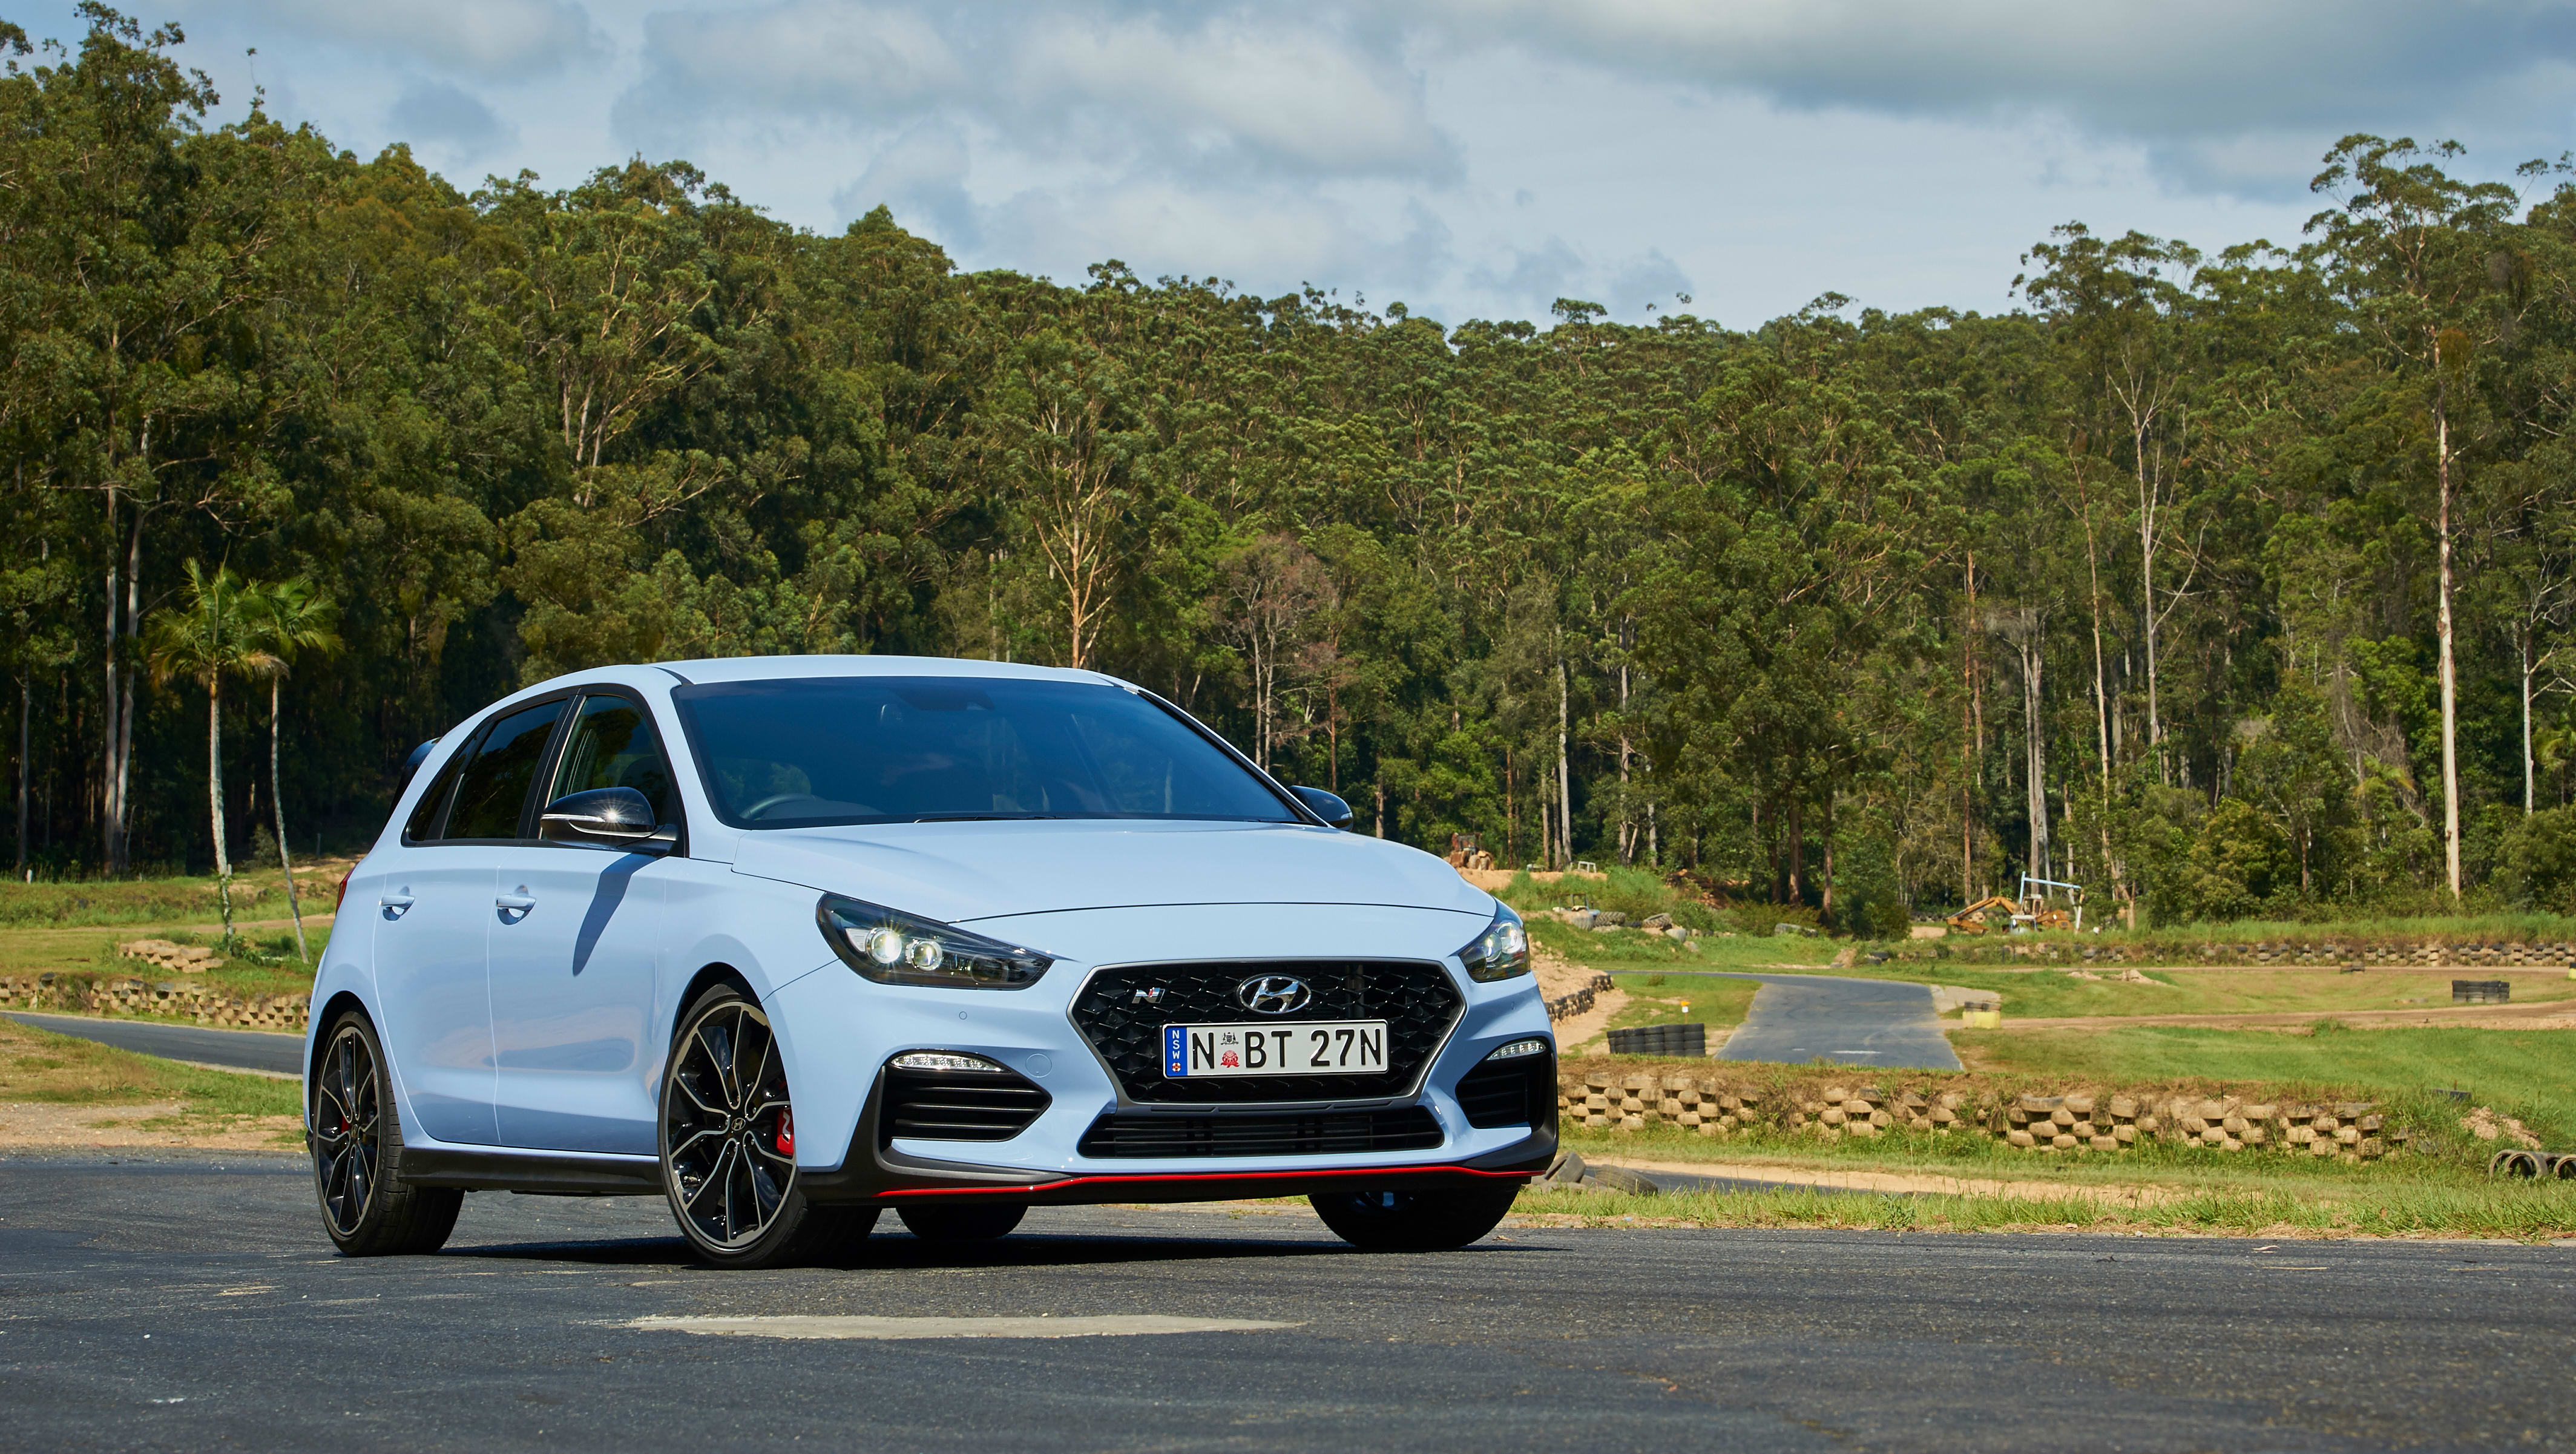 hyundai i30 n 2018 pricing and specs confirmed car news. Black Bedroom Furniture Sets. Home Design Ideas